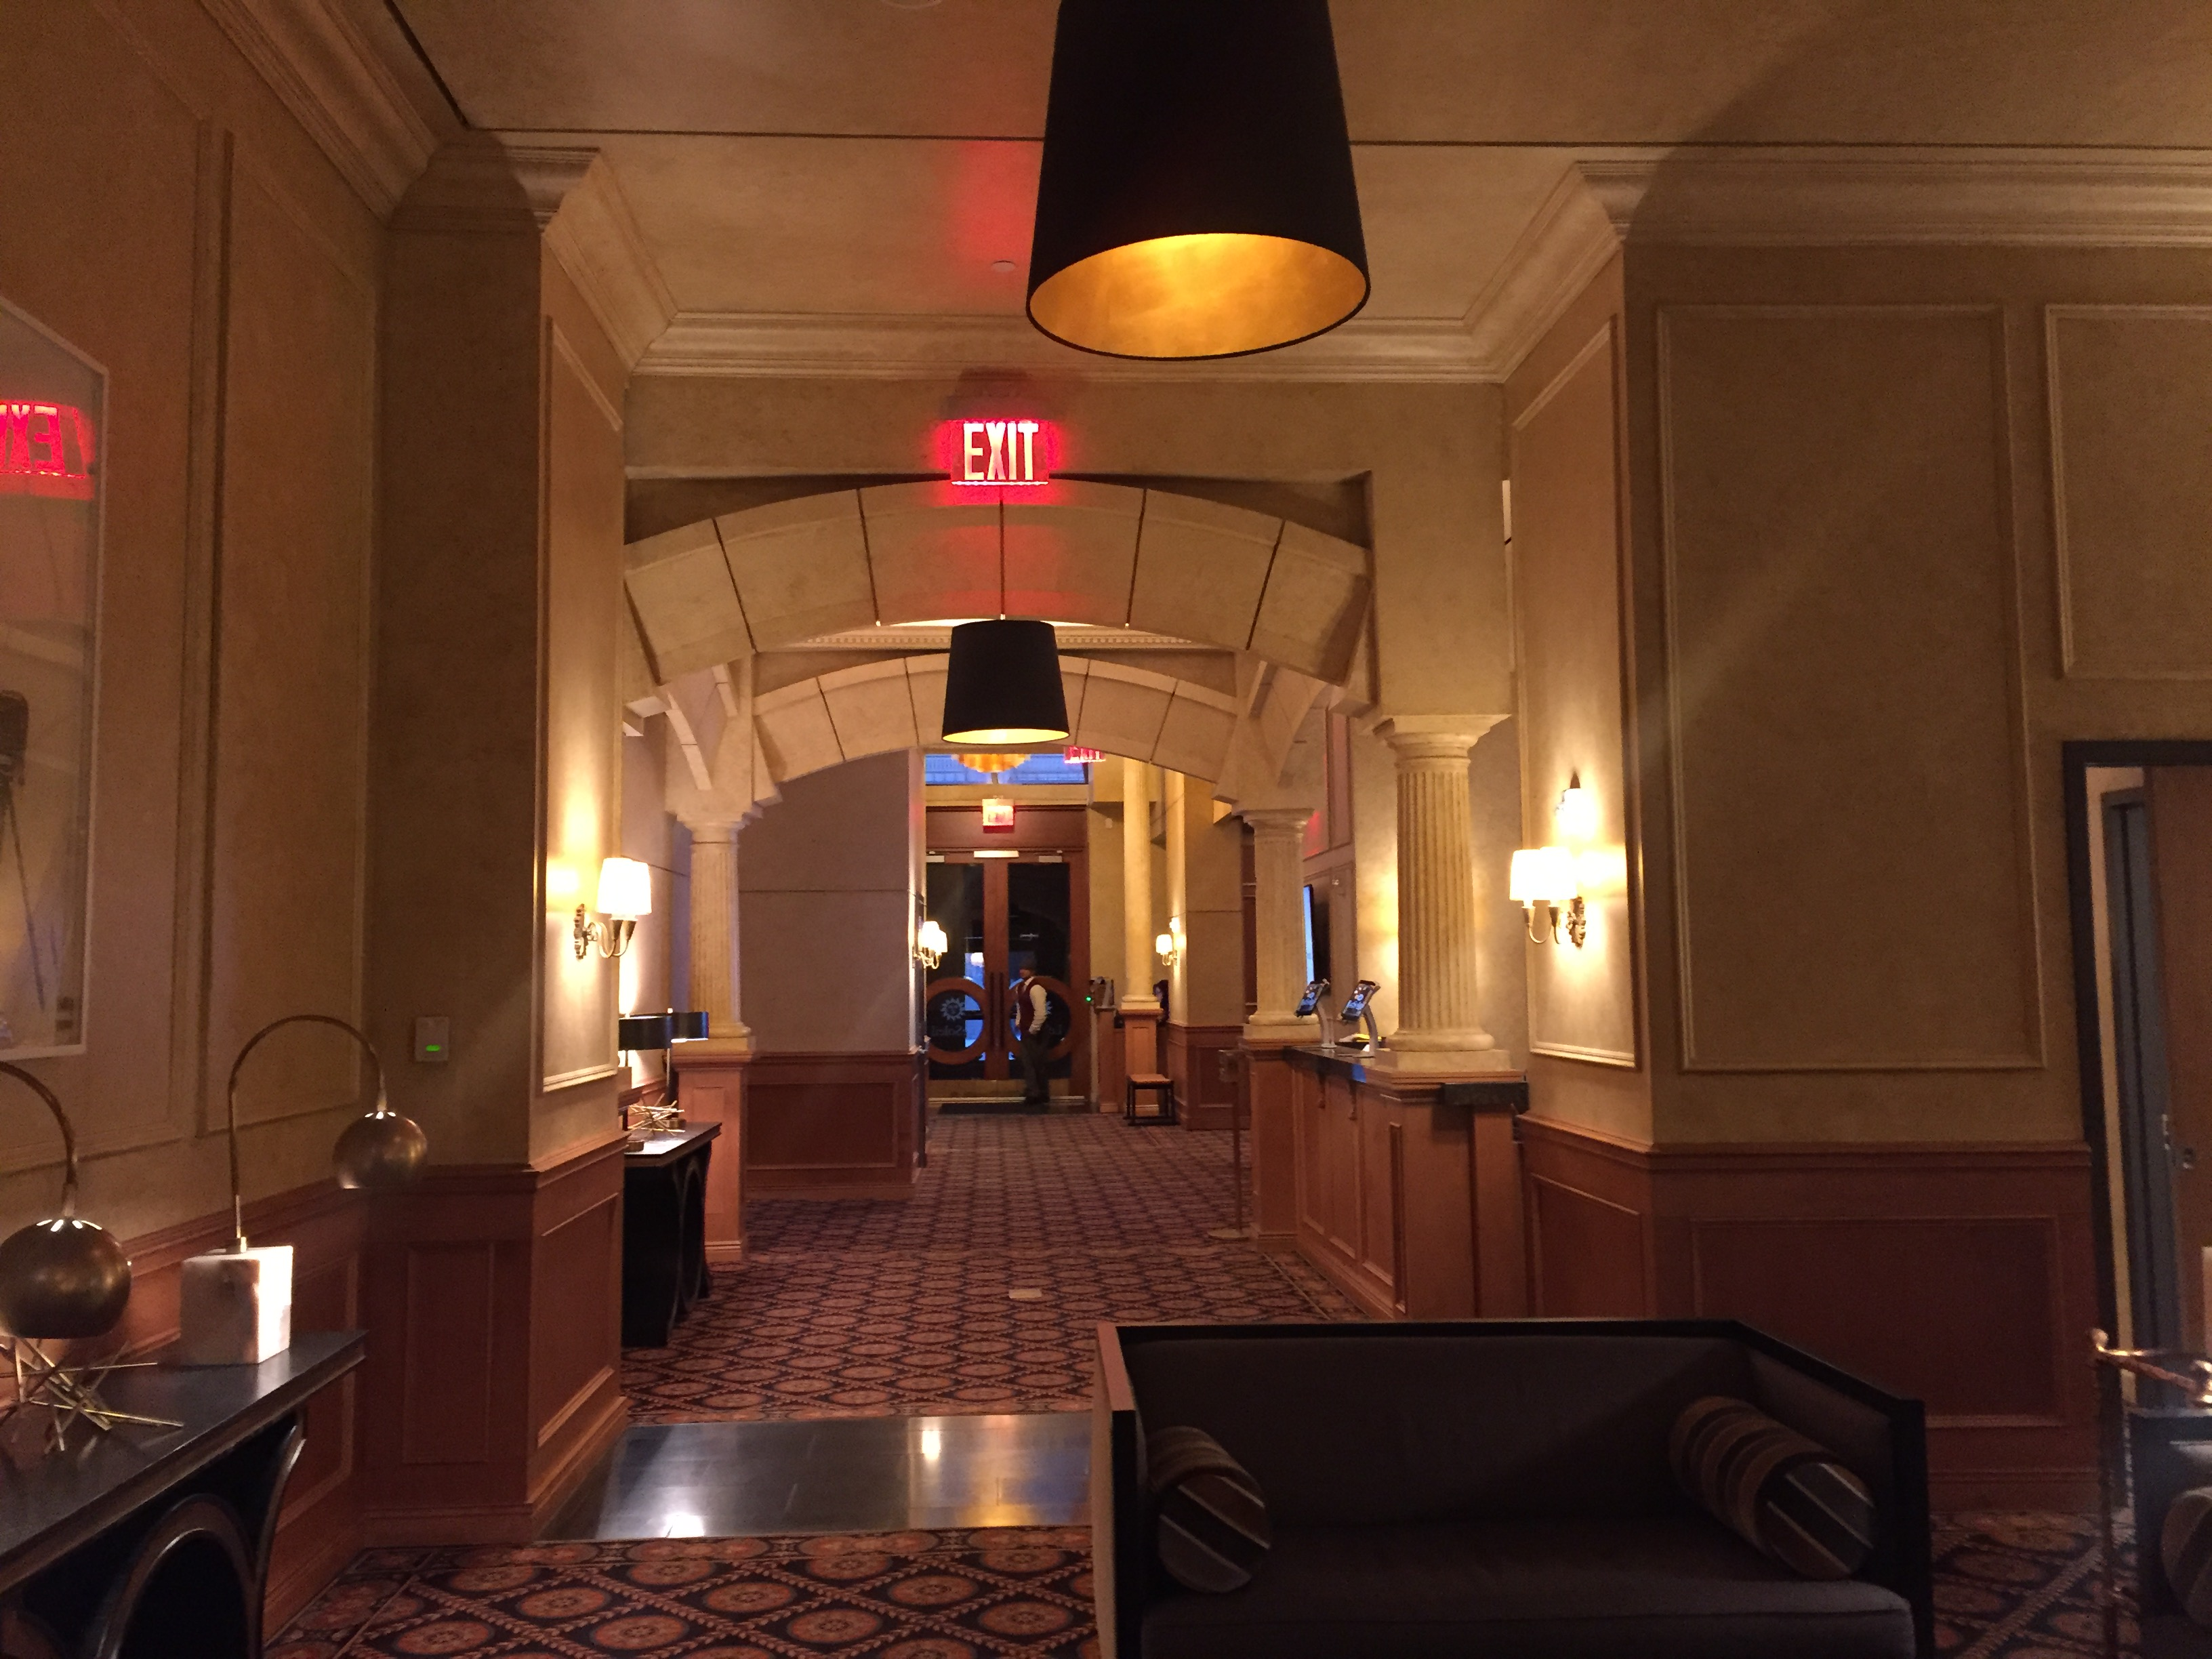 Hotel le soleil in nyc offers a warm inviting repite for for Warm getaways from nyc